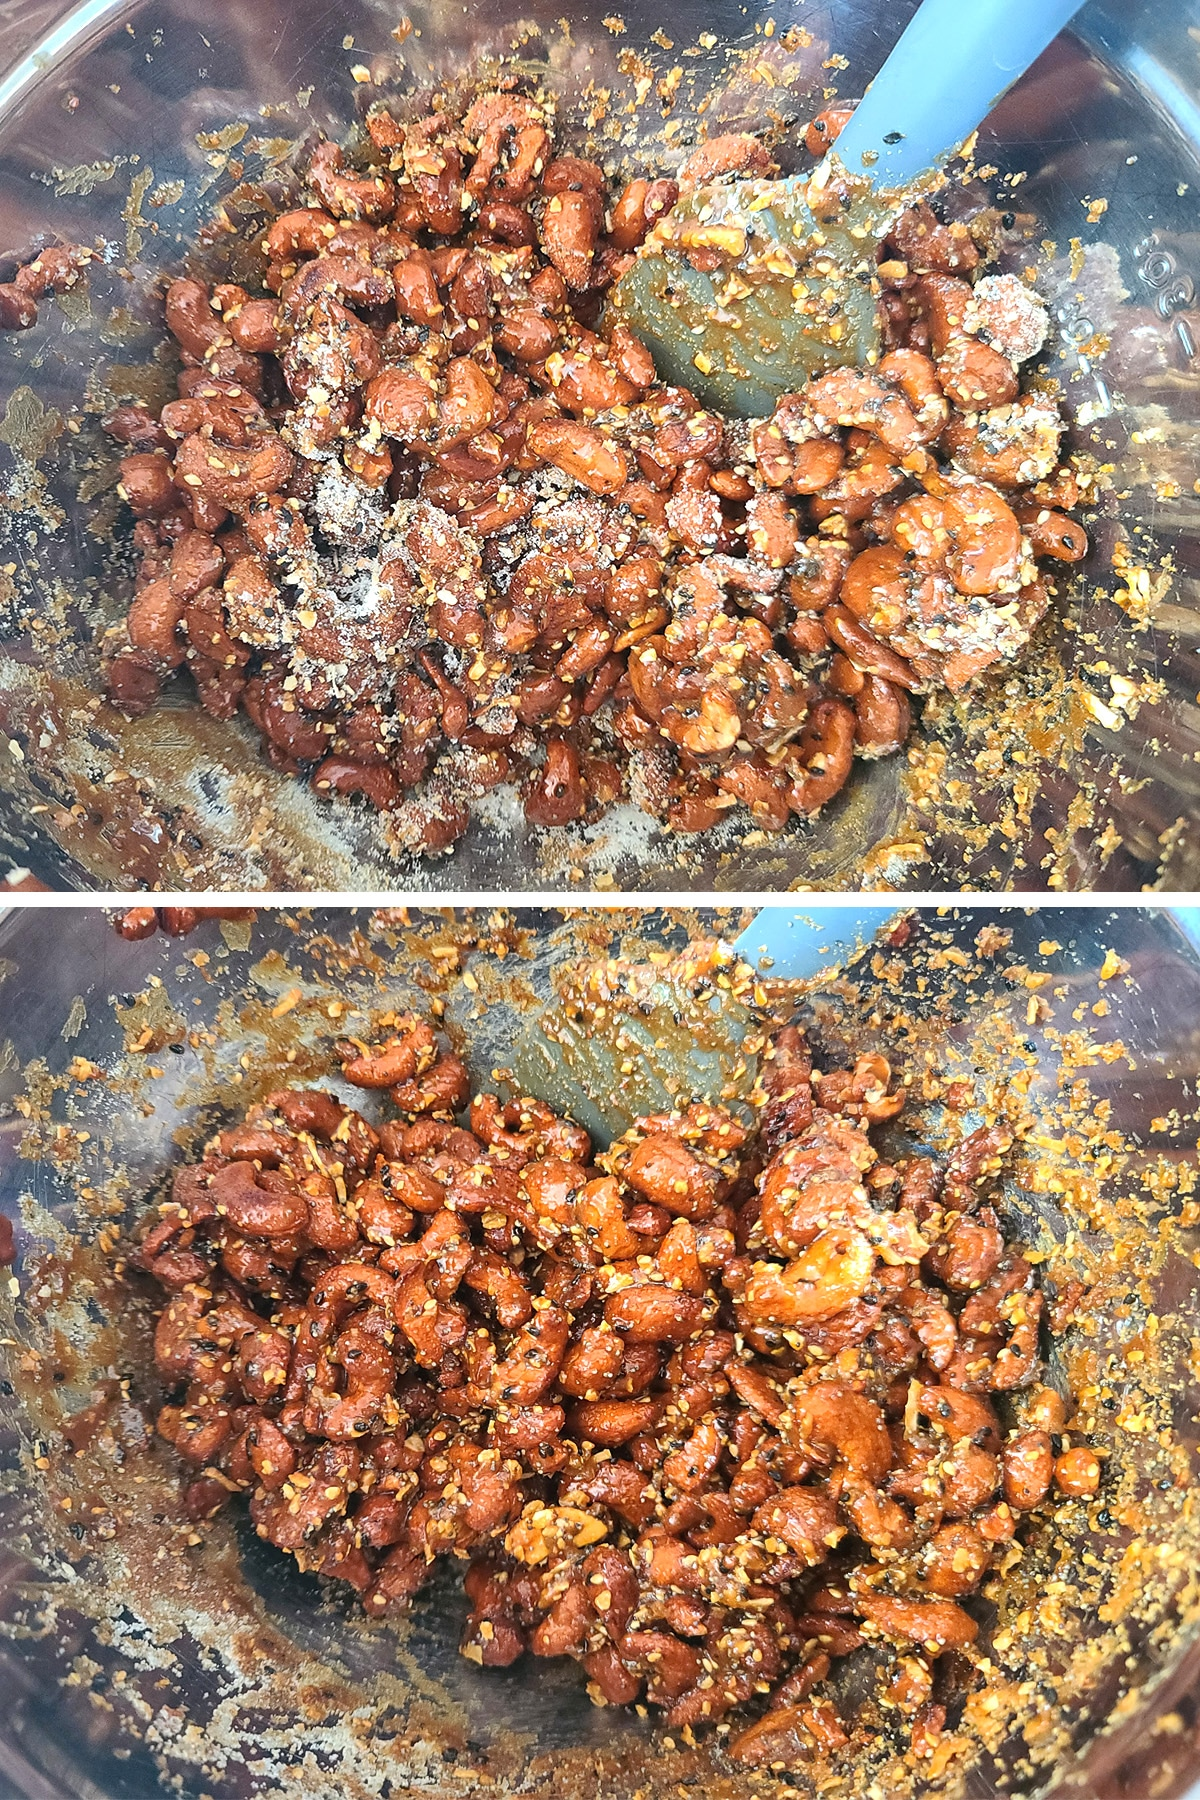 A two part image showing the glazed nuts being tossed with the sugar everything seasoning mixture. In the top image, sugar is visible on the nuts. In the second, the sugar has been absorbed.